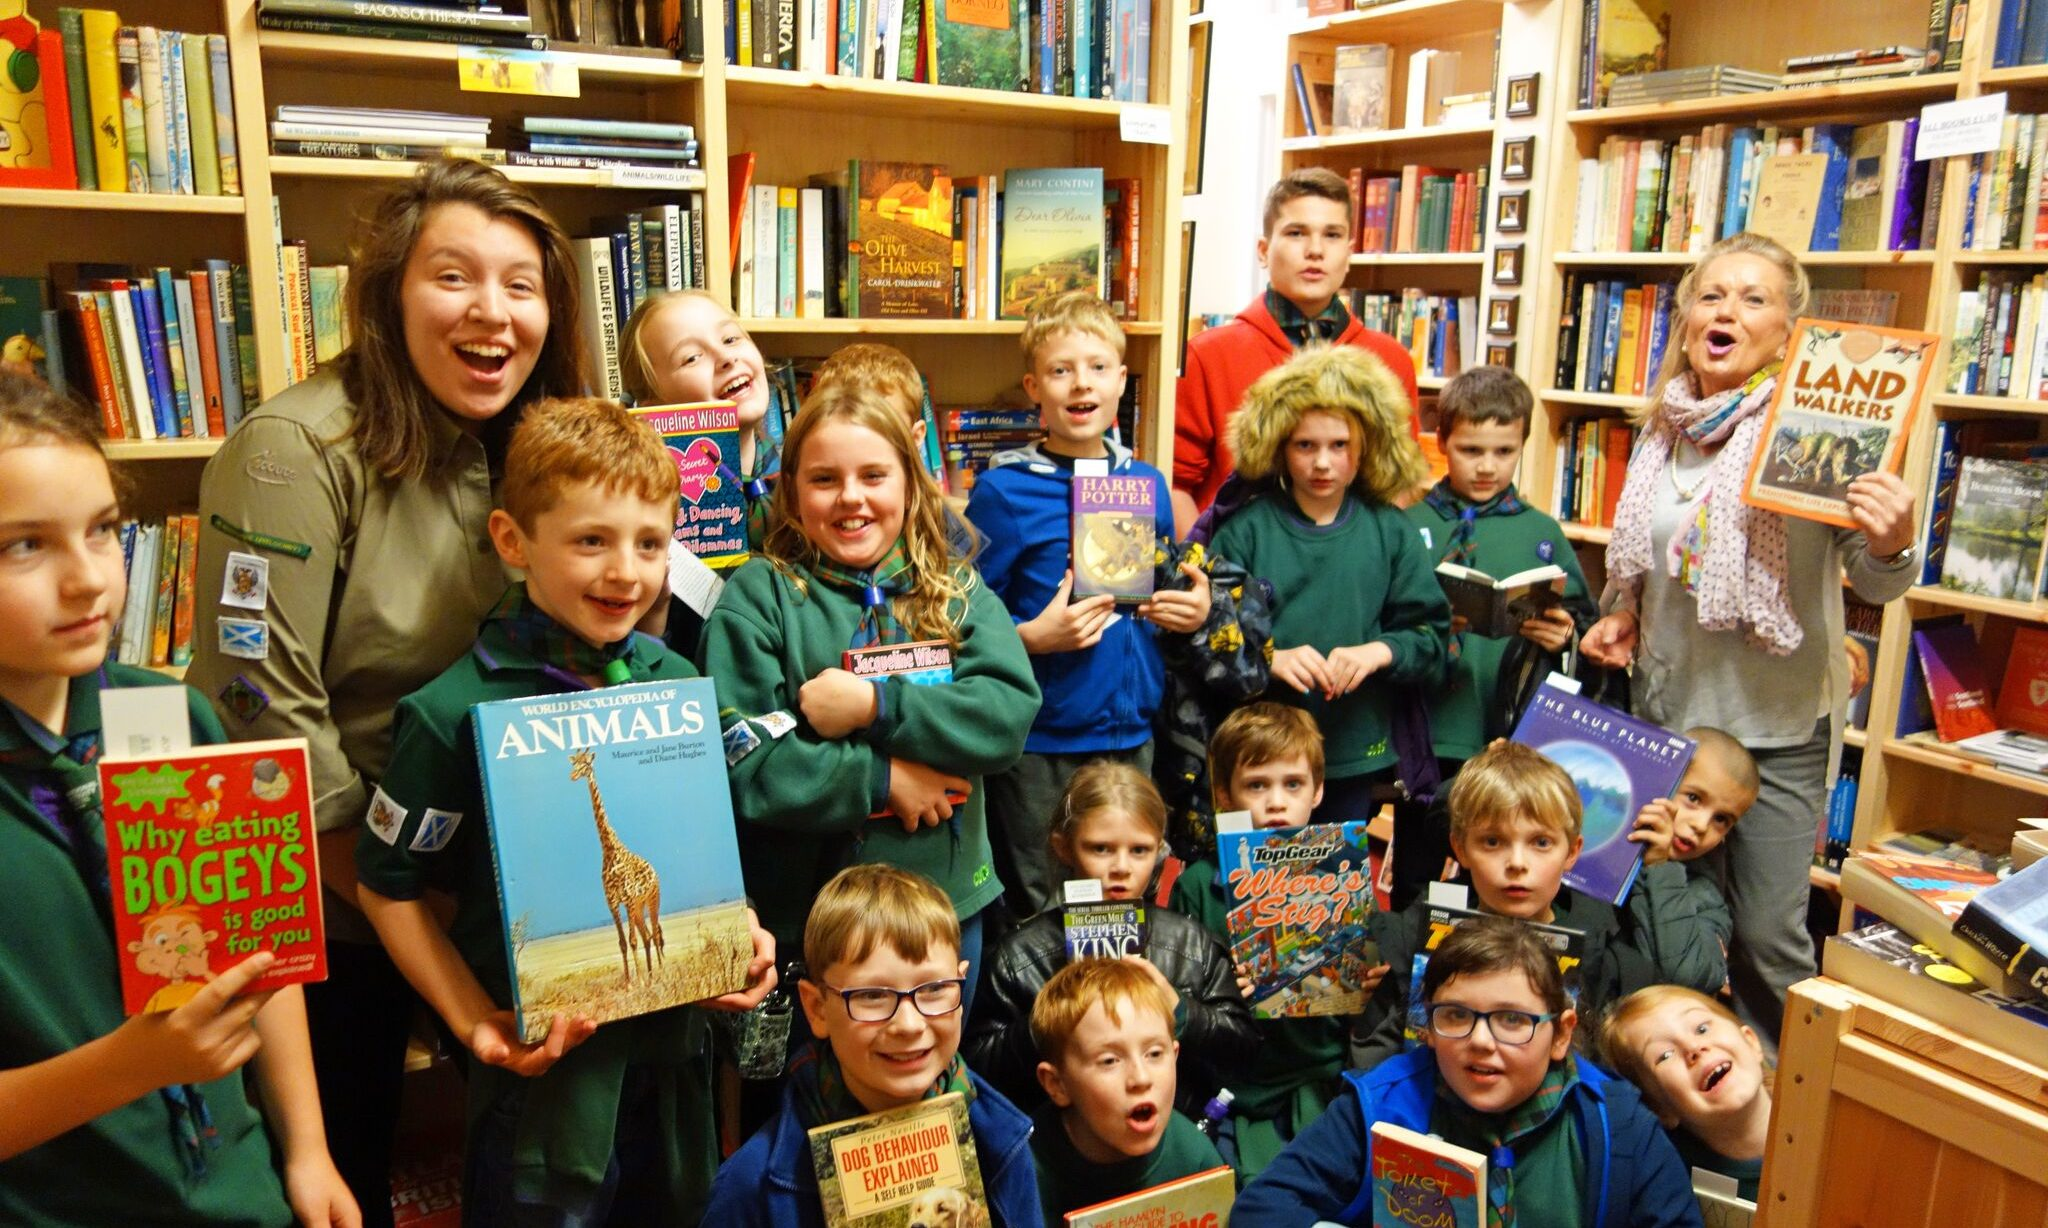 Cubs from the 1st Perthshire (Pitlochry) Scout Group visiting Pitlochry Station Bookshop